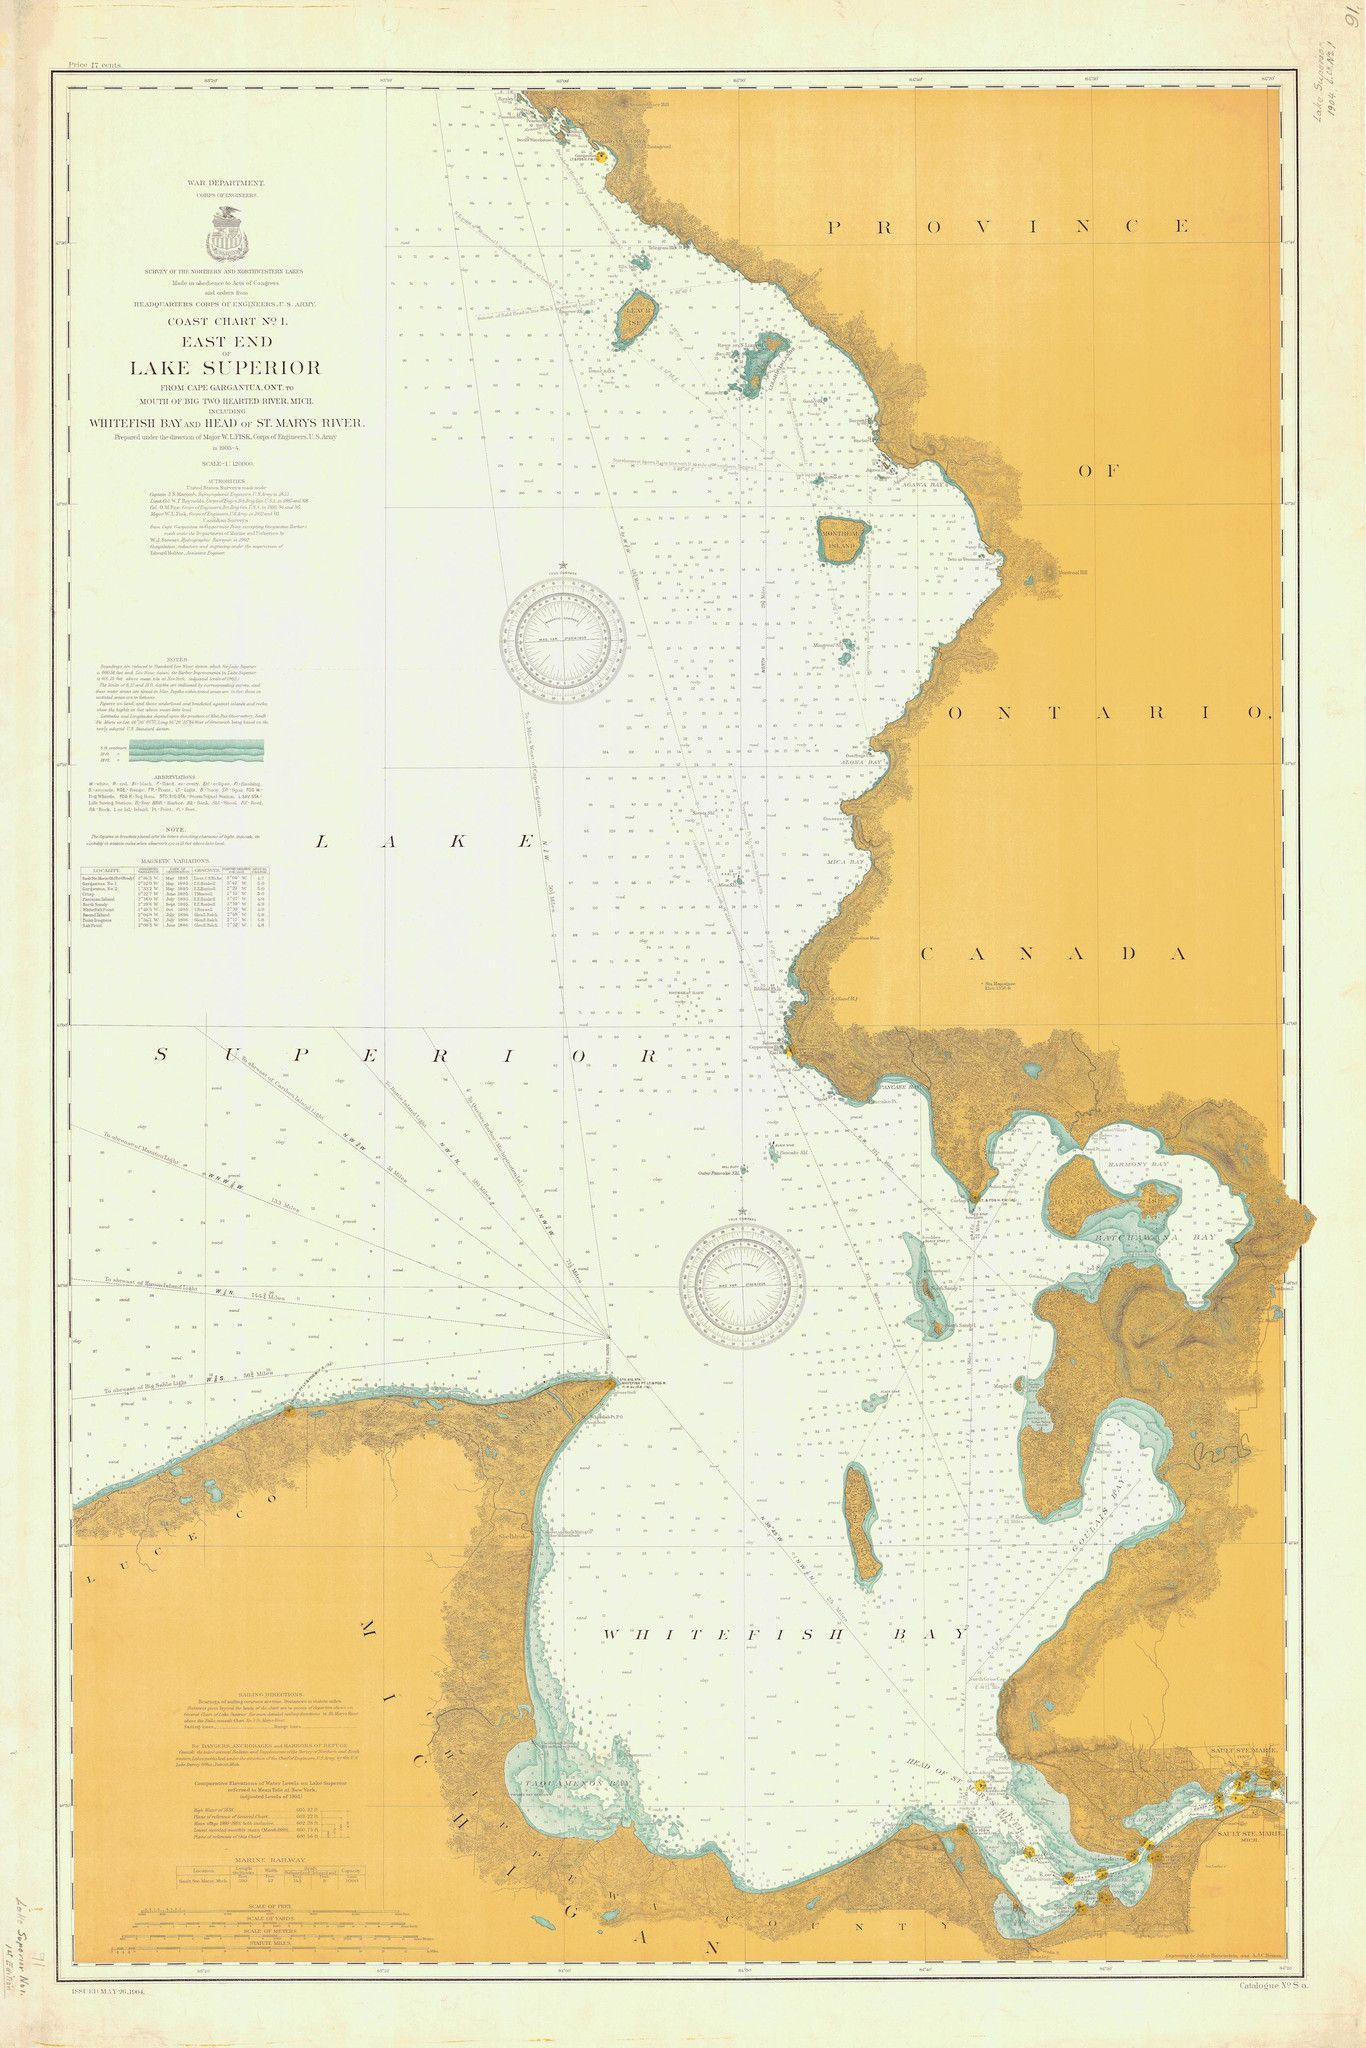 Lake superior east end whitefish bay historical map 1904 a beautiful high quality print of the historical map of lake superior east end whitefish bay historical map from we take great care to ensure that the be freerunsca Choice Image